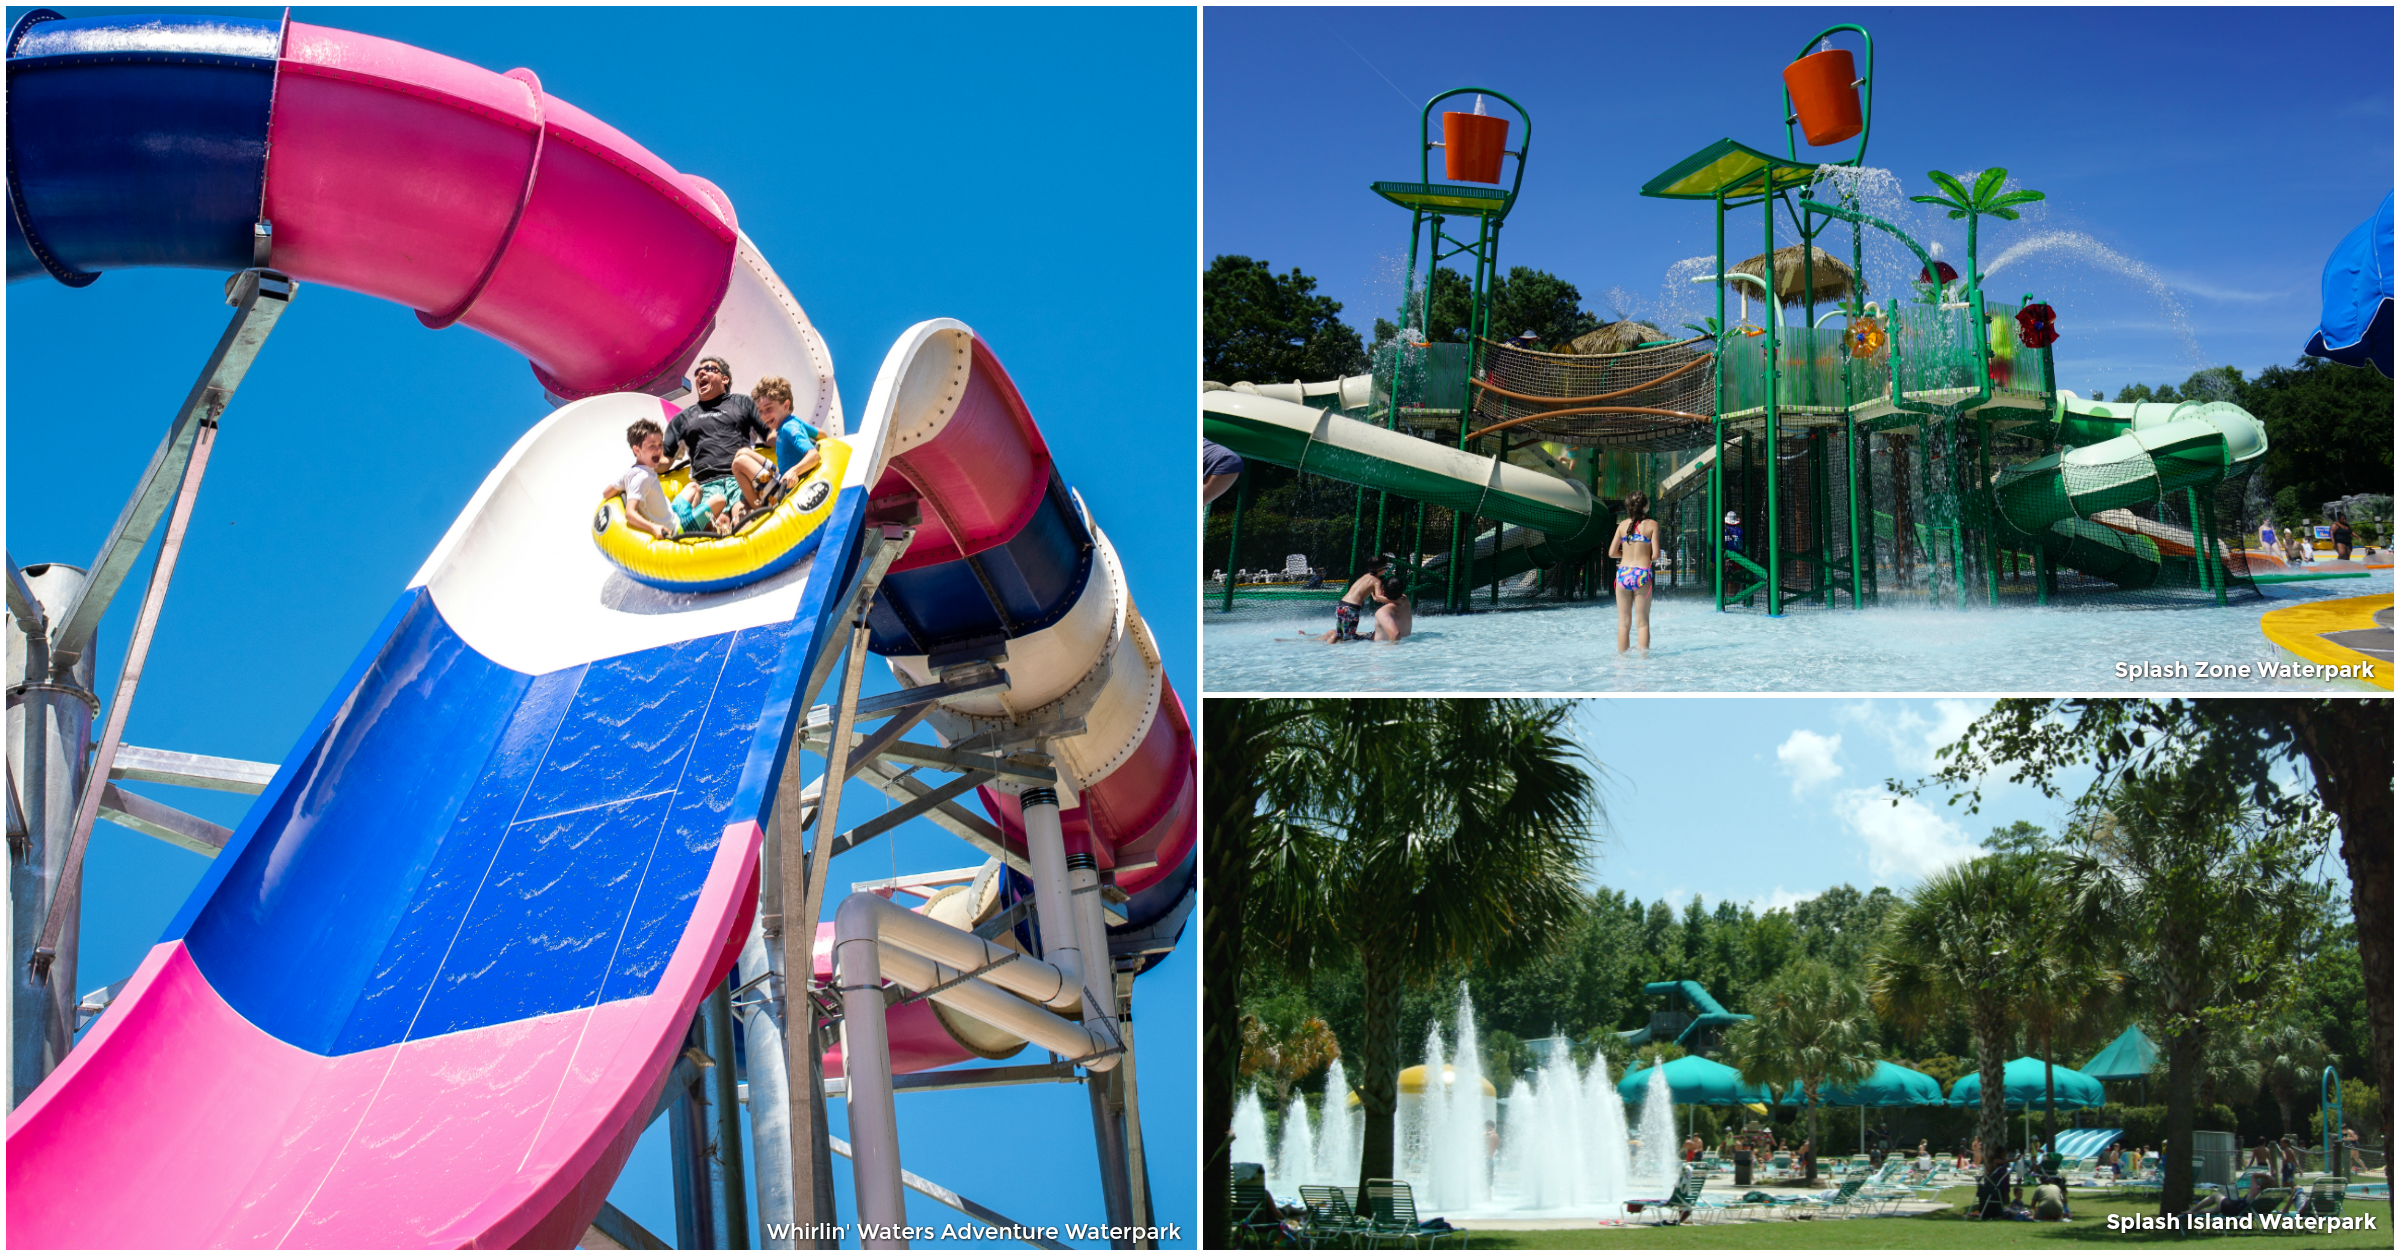 Collage of three images - people on an innertube on the Washout at Whirlin' Waters Adventure Wate